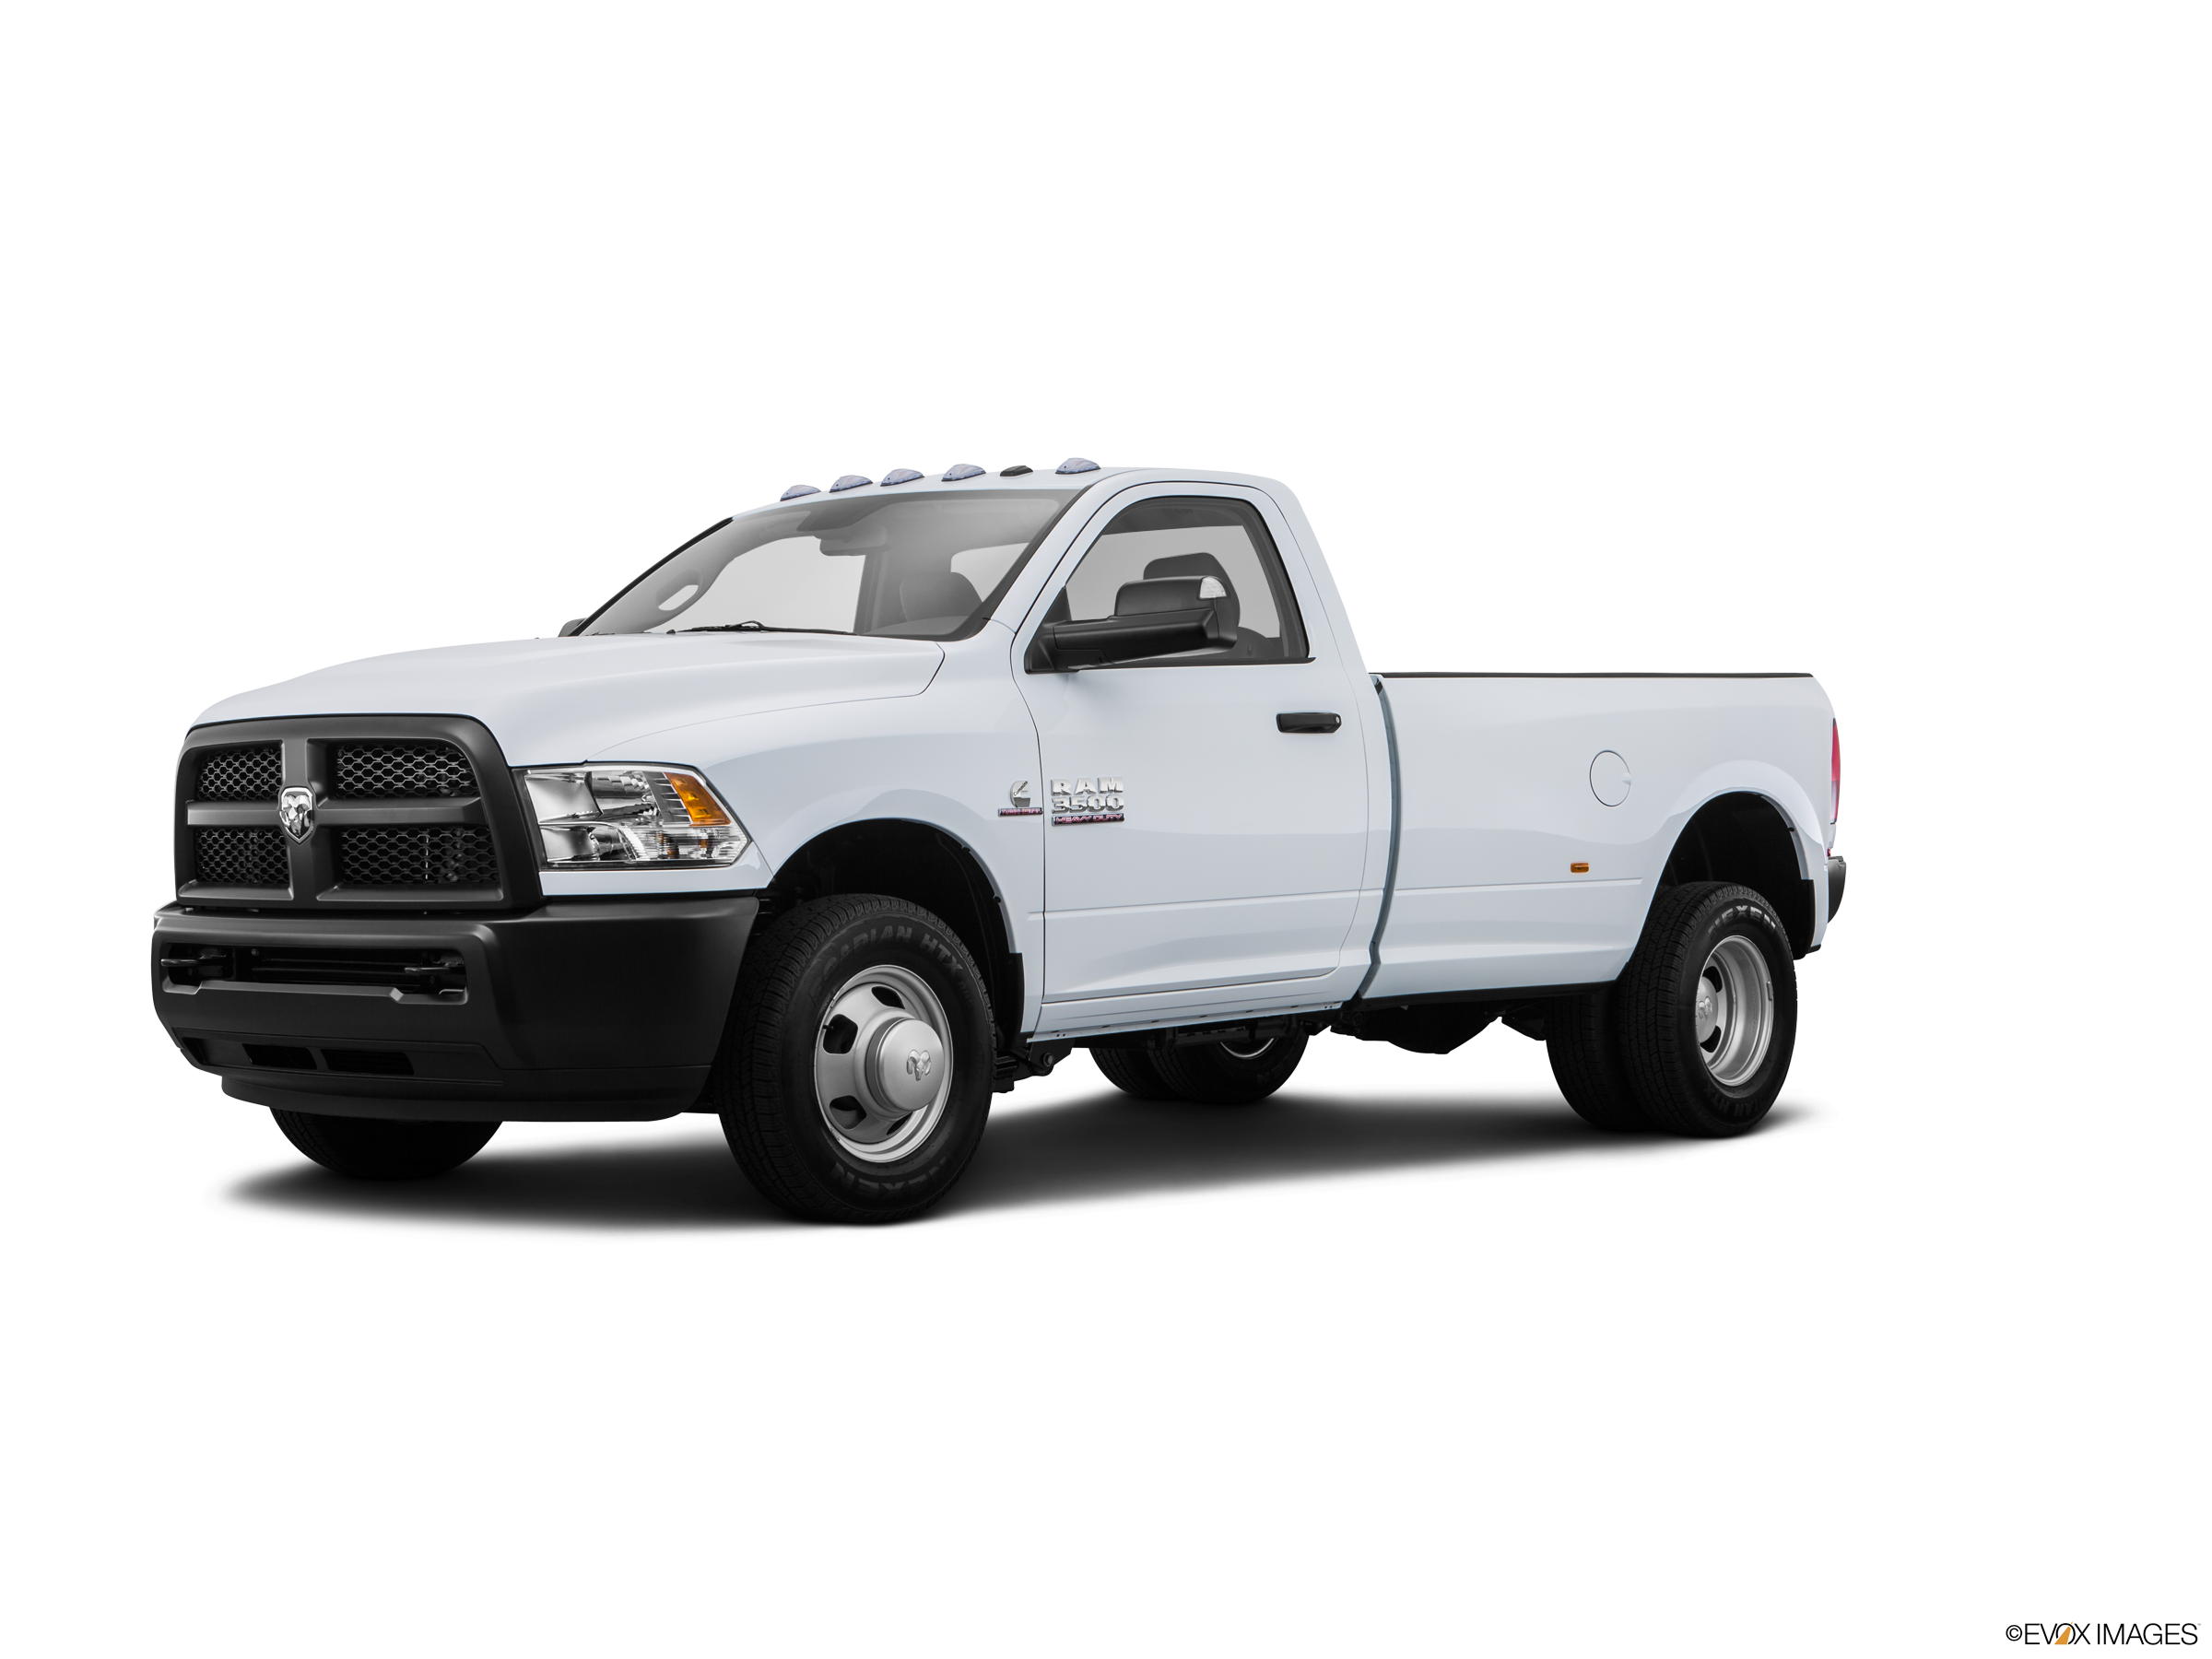 2015 Ram 3500 Trucks Values Cars For Sale Kelley Blue Book